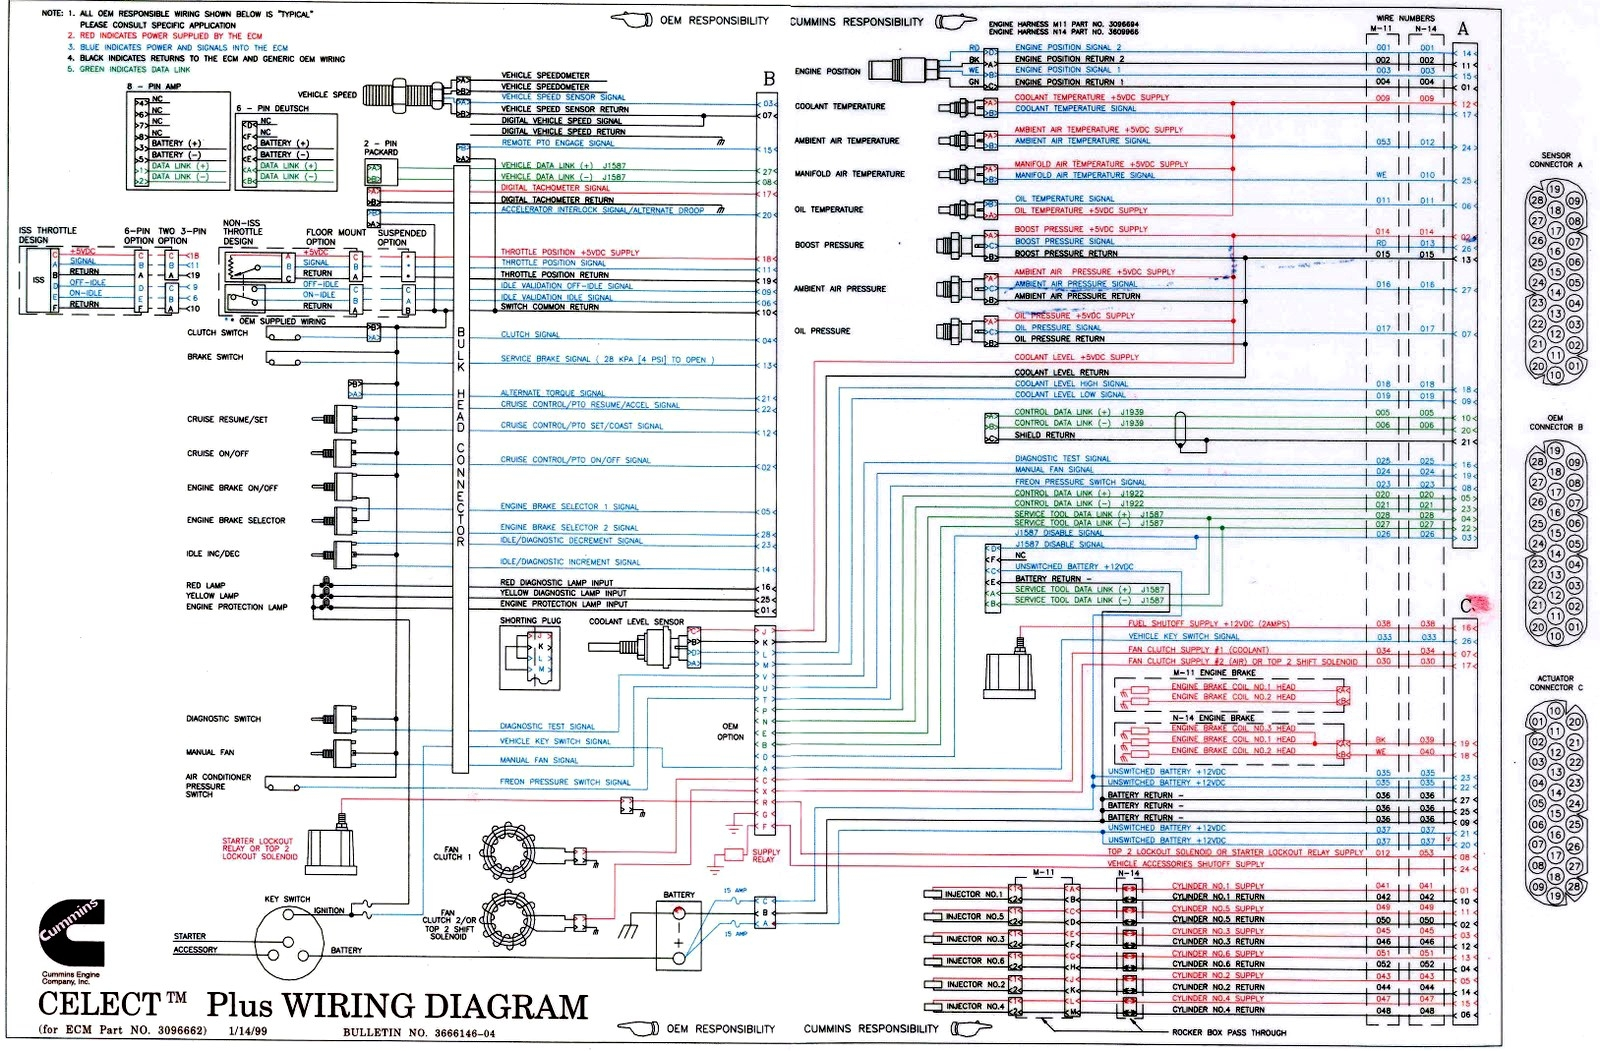 cummins ism ecm wiring diagram Collection-cummins n14 plus engine diagram circuit diagram symbols u2022 rh veturecapitaltrust co Volvo VNL Truck Wiring 16-s